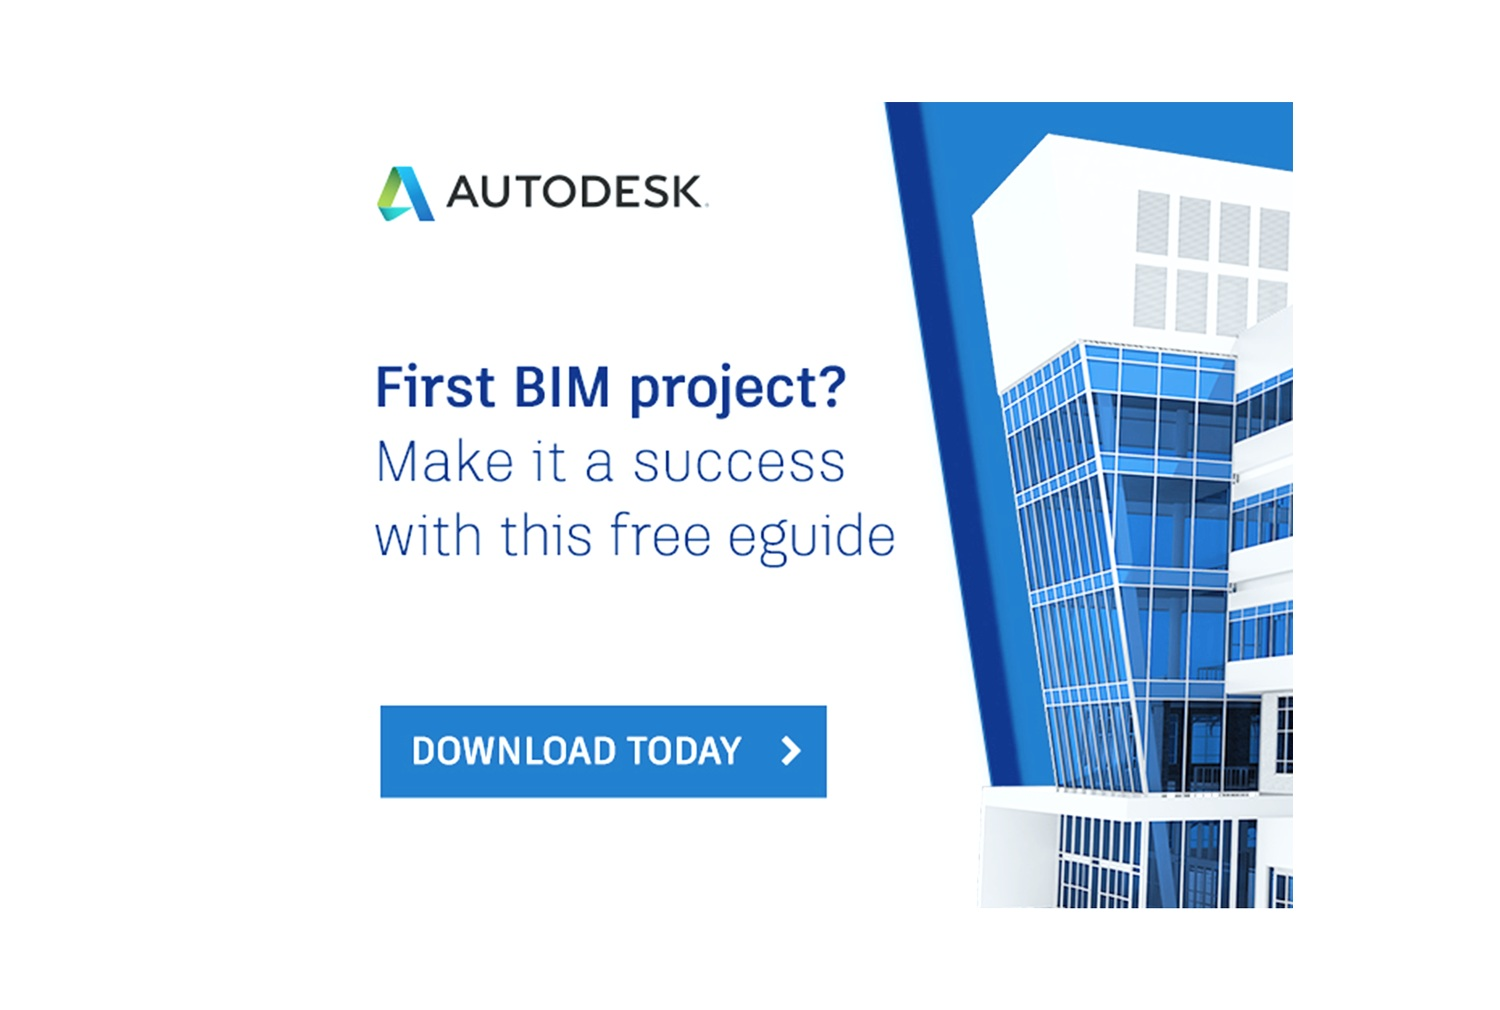 First-BIM-Project-Guide-1500X1010.png